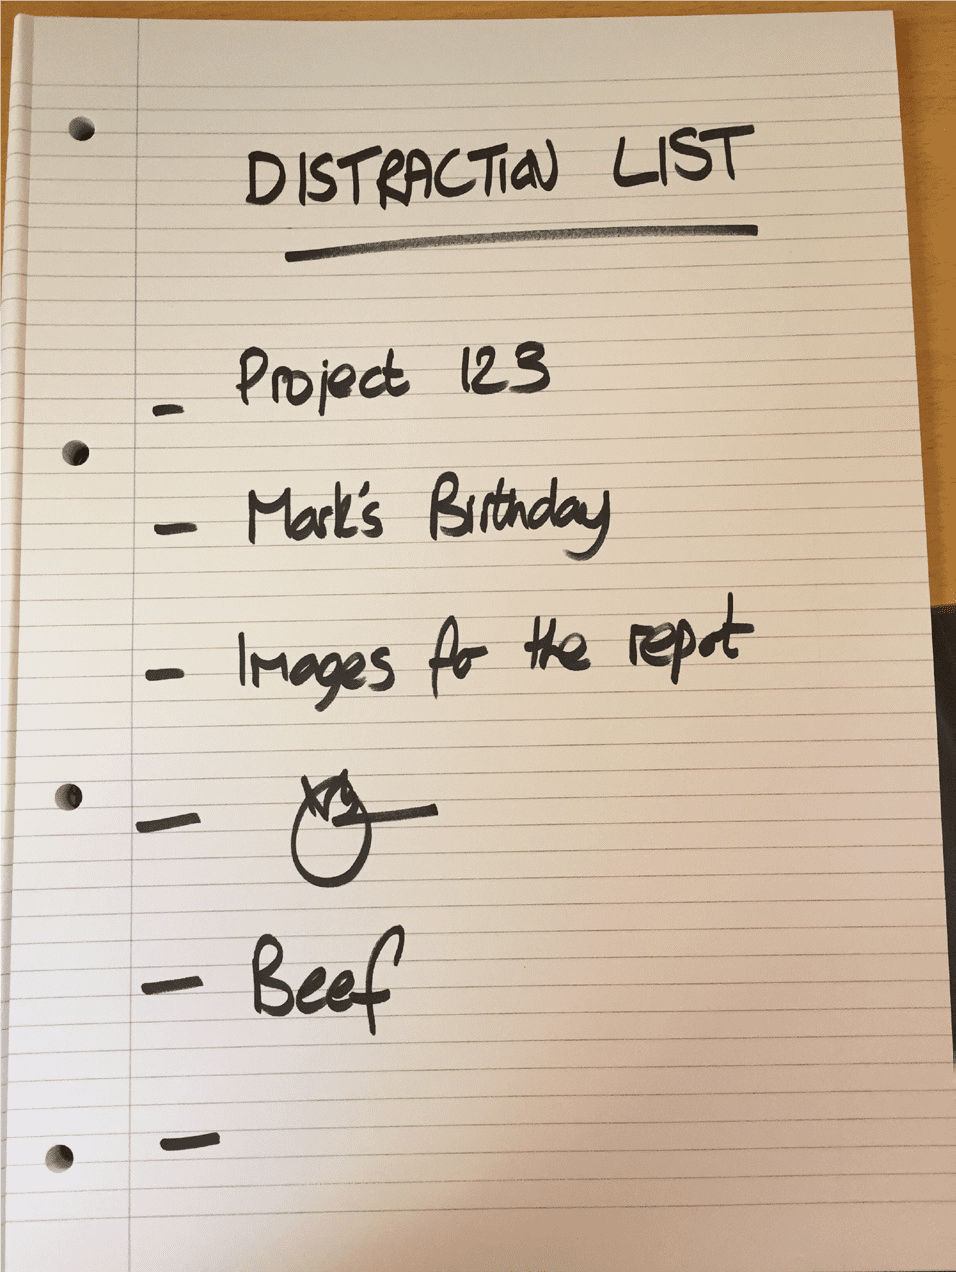 Note of list of distractions on paper